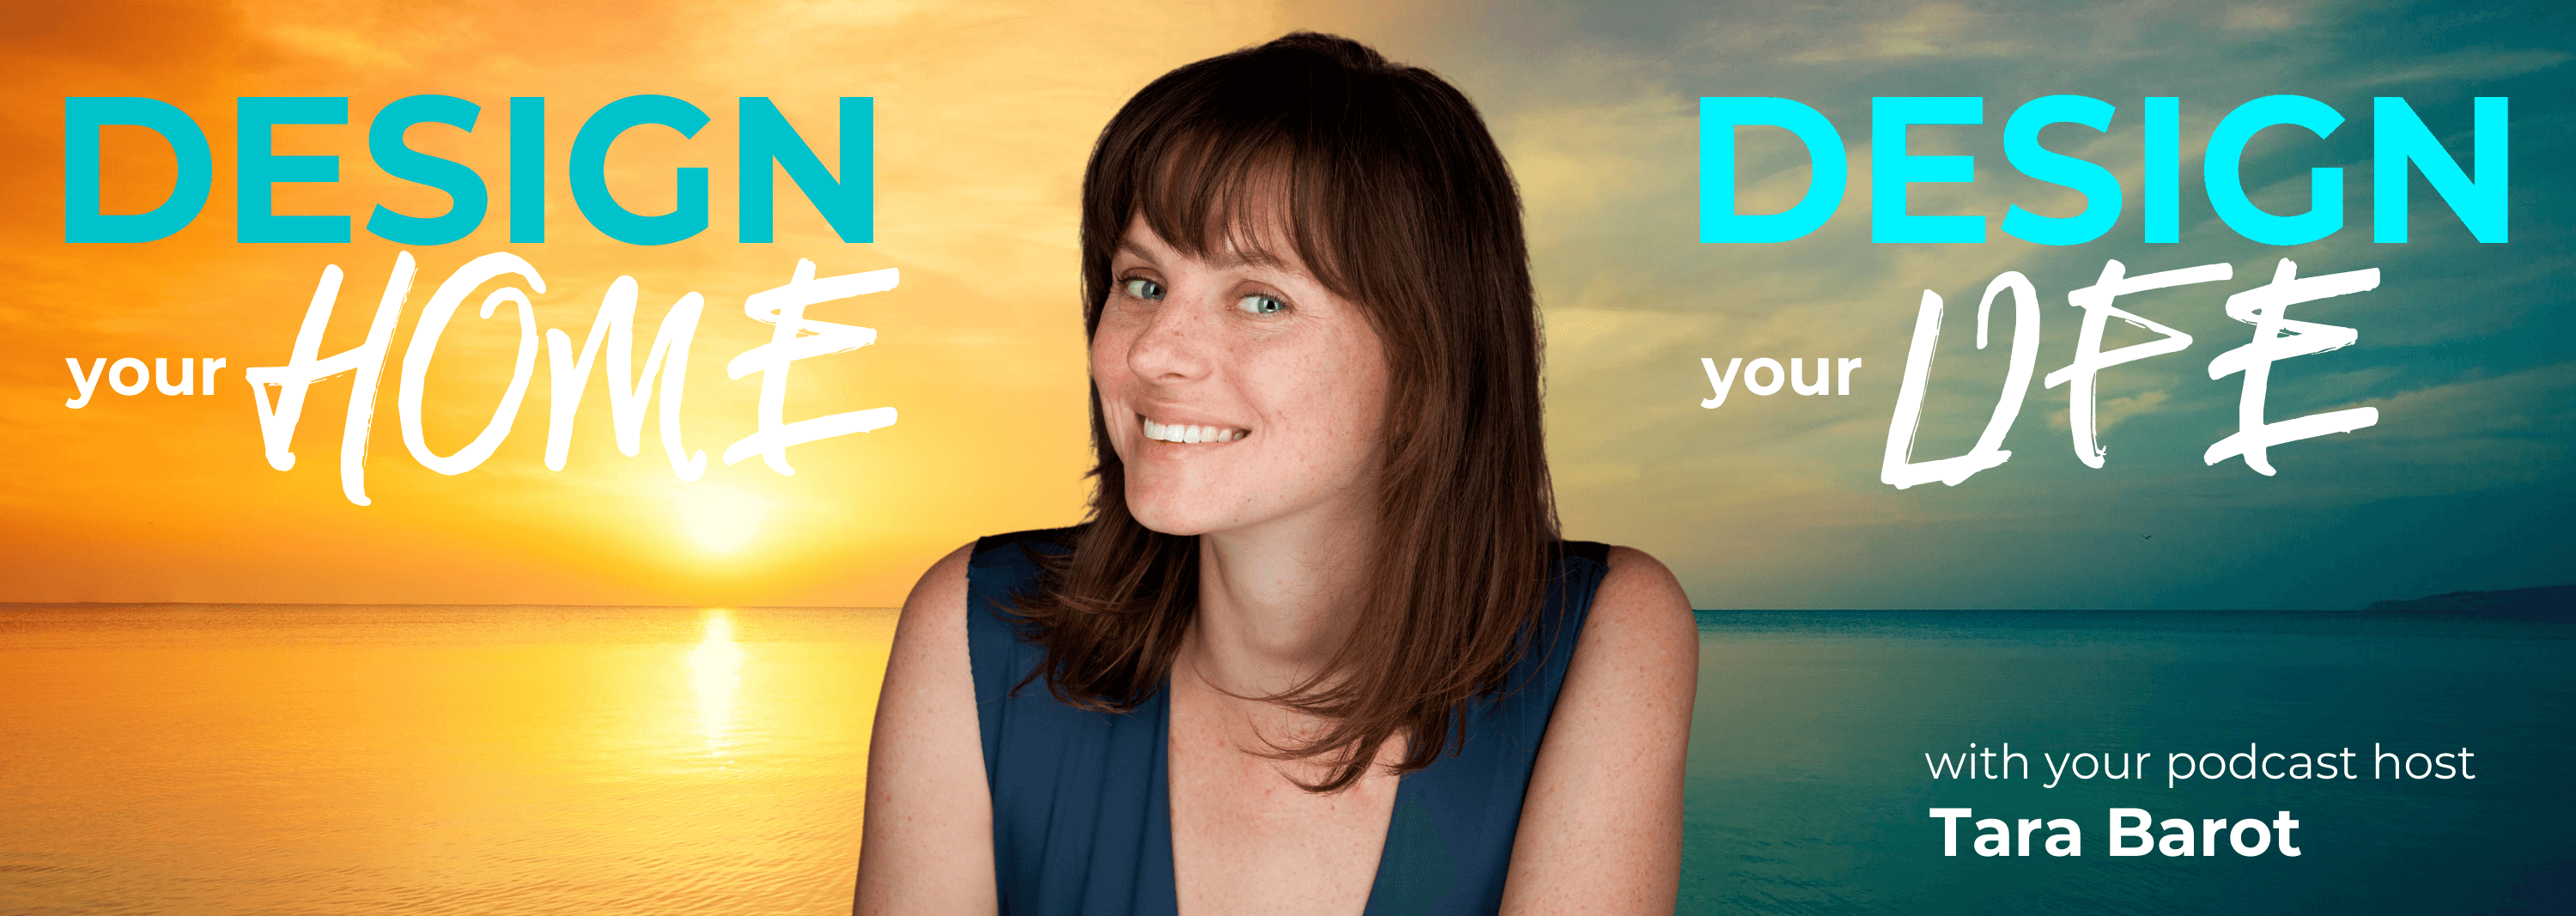 Introducing Design Your Home, Design Your Life Podcast with Tara Barot #1